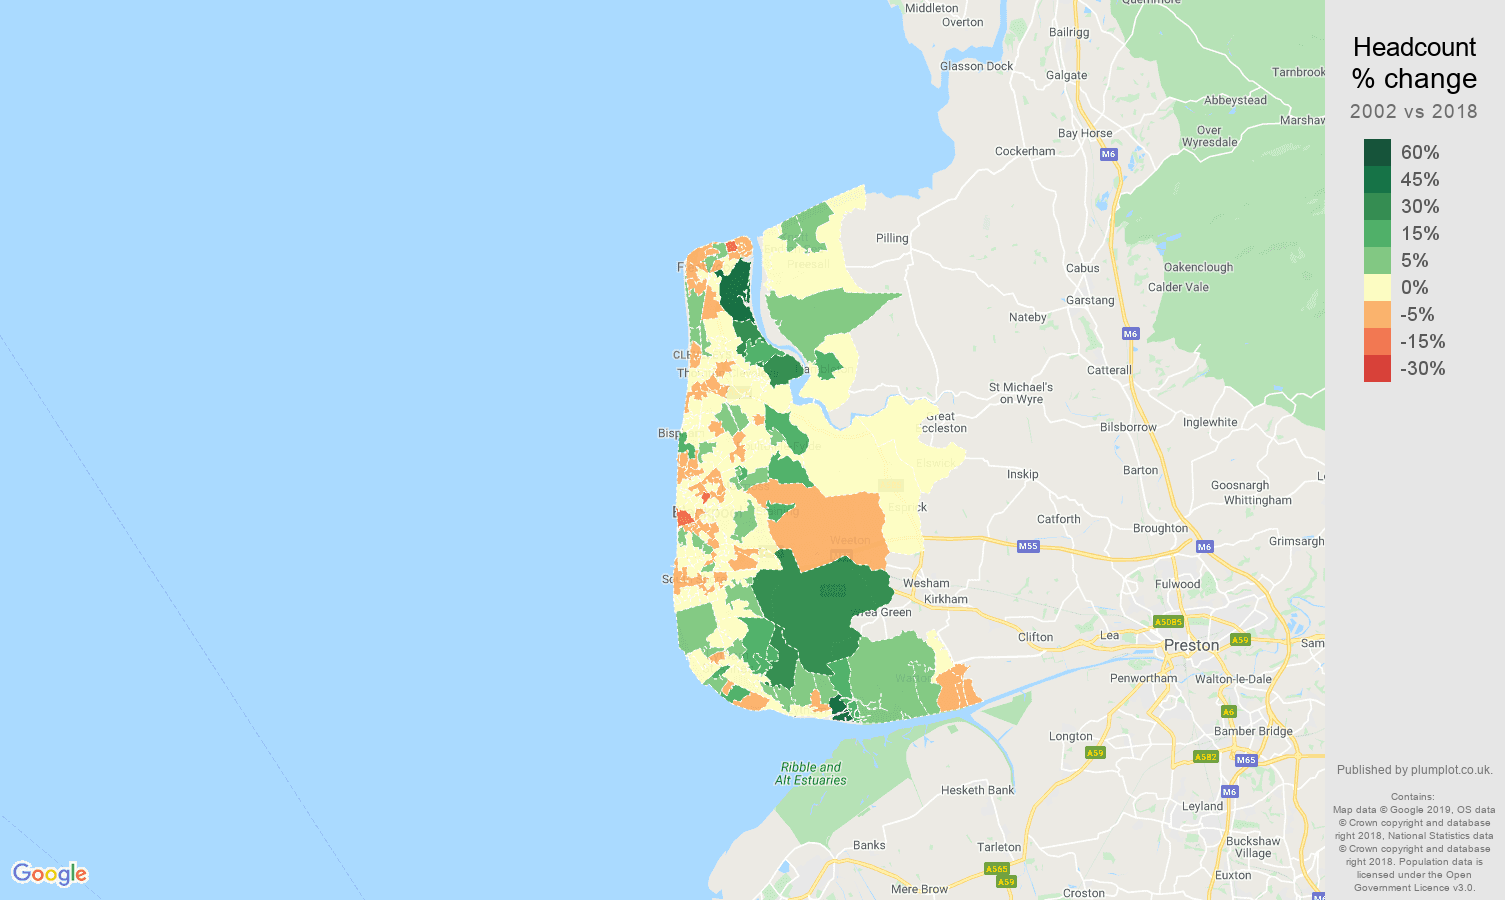 Blackpool headcount change map